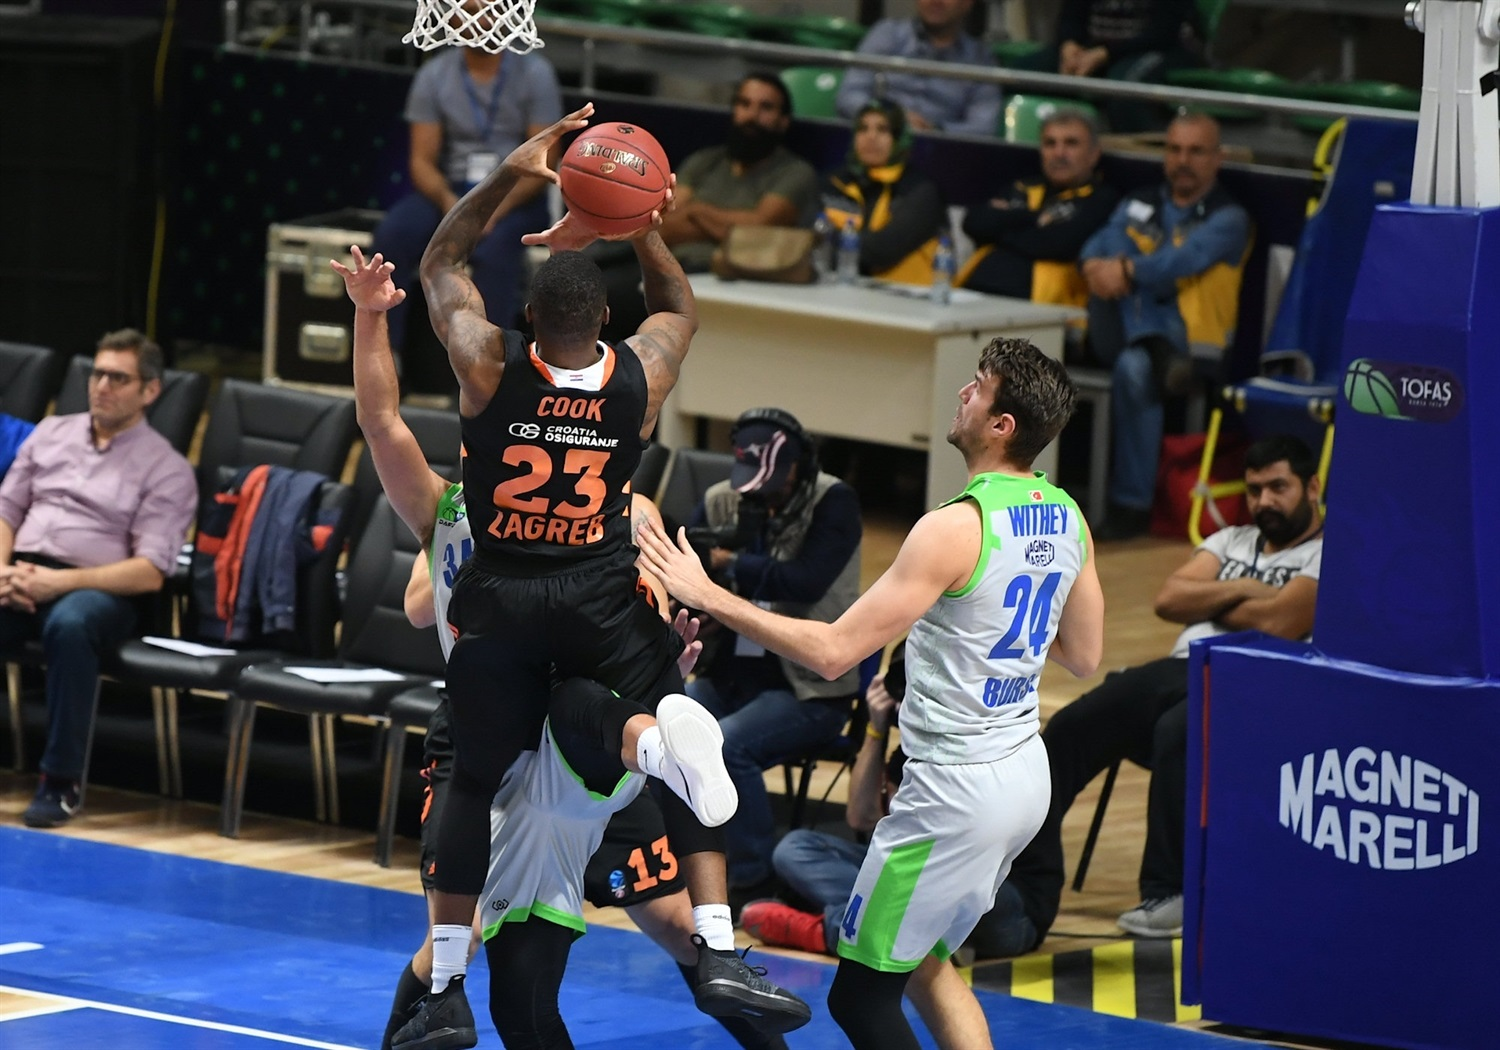 Elgin Cook - Cedevita Zagreb (photo Ozan Demir - Tofas) - EC18